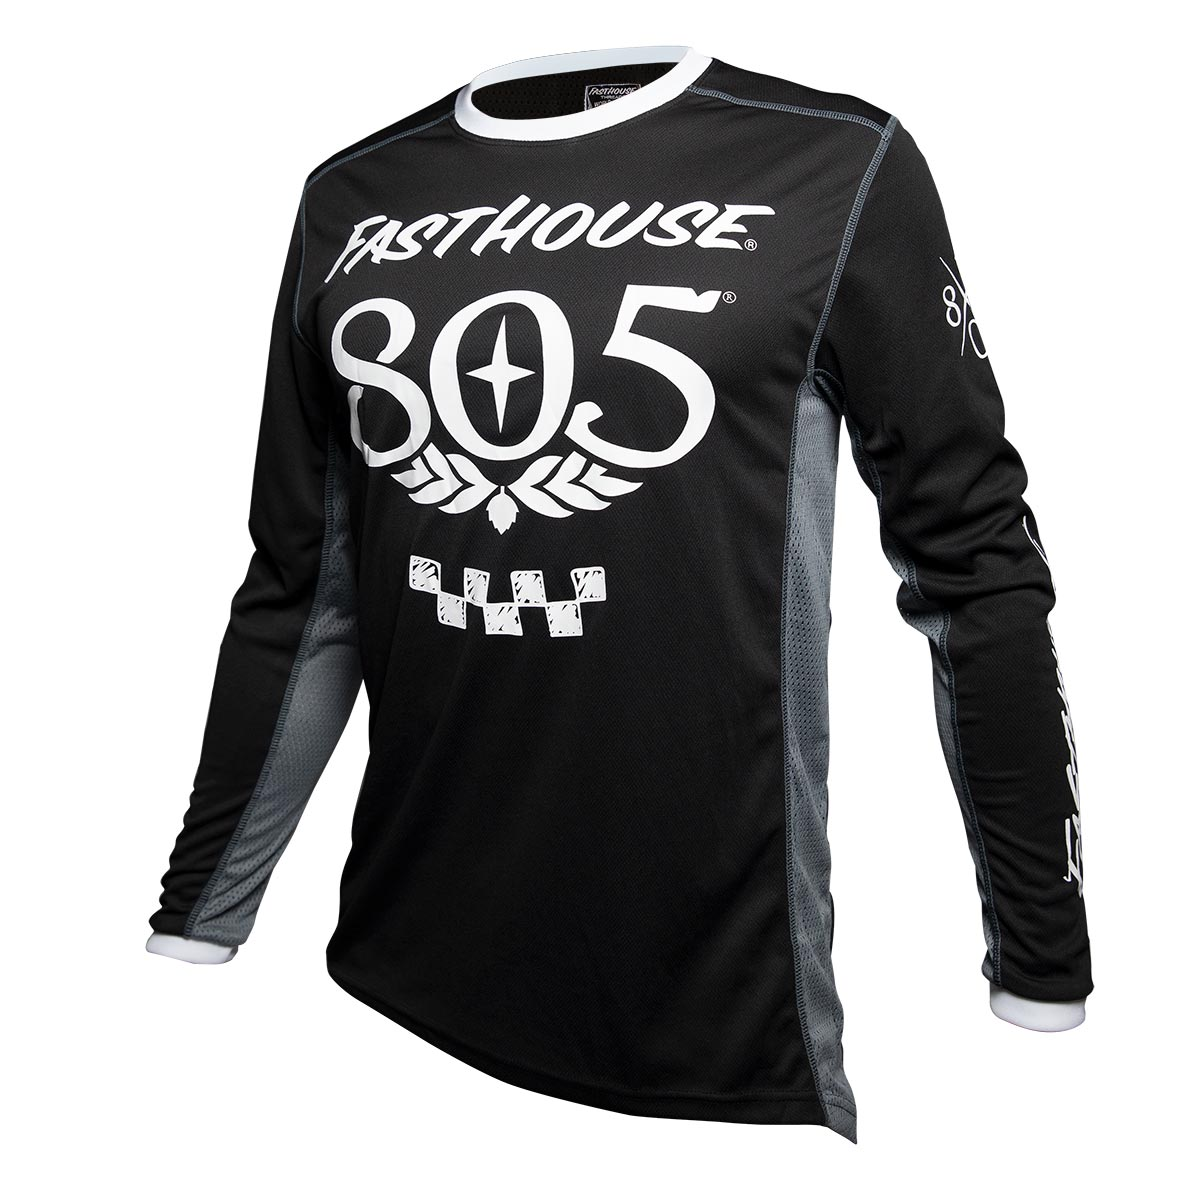 Fasthouse - 805 Send It Jersey - Black